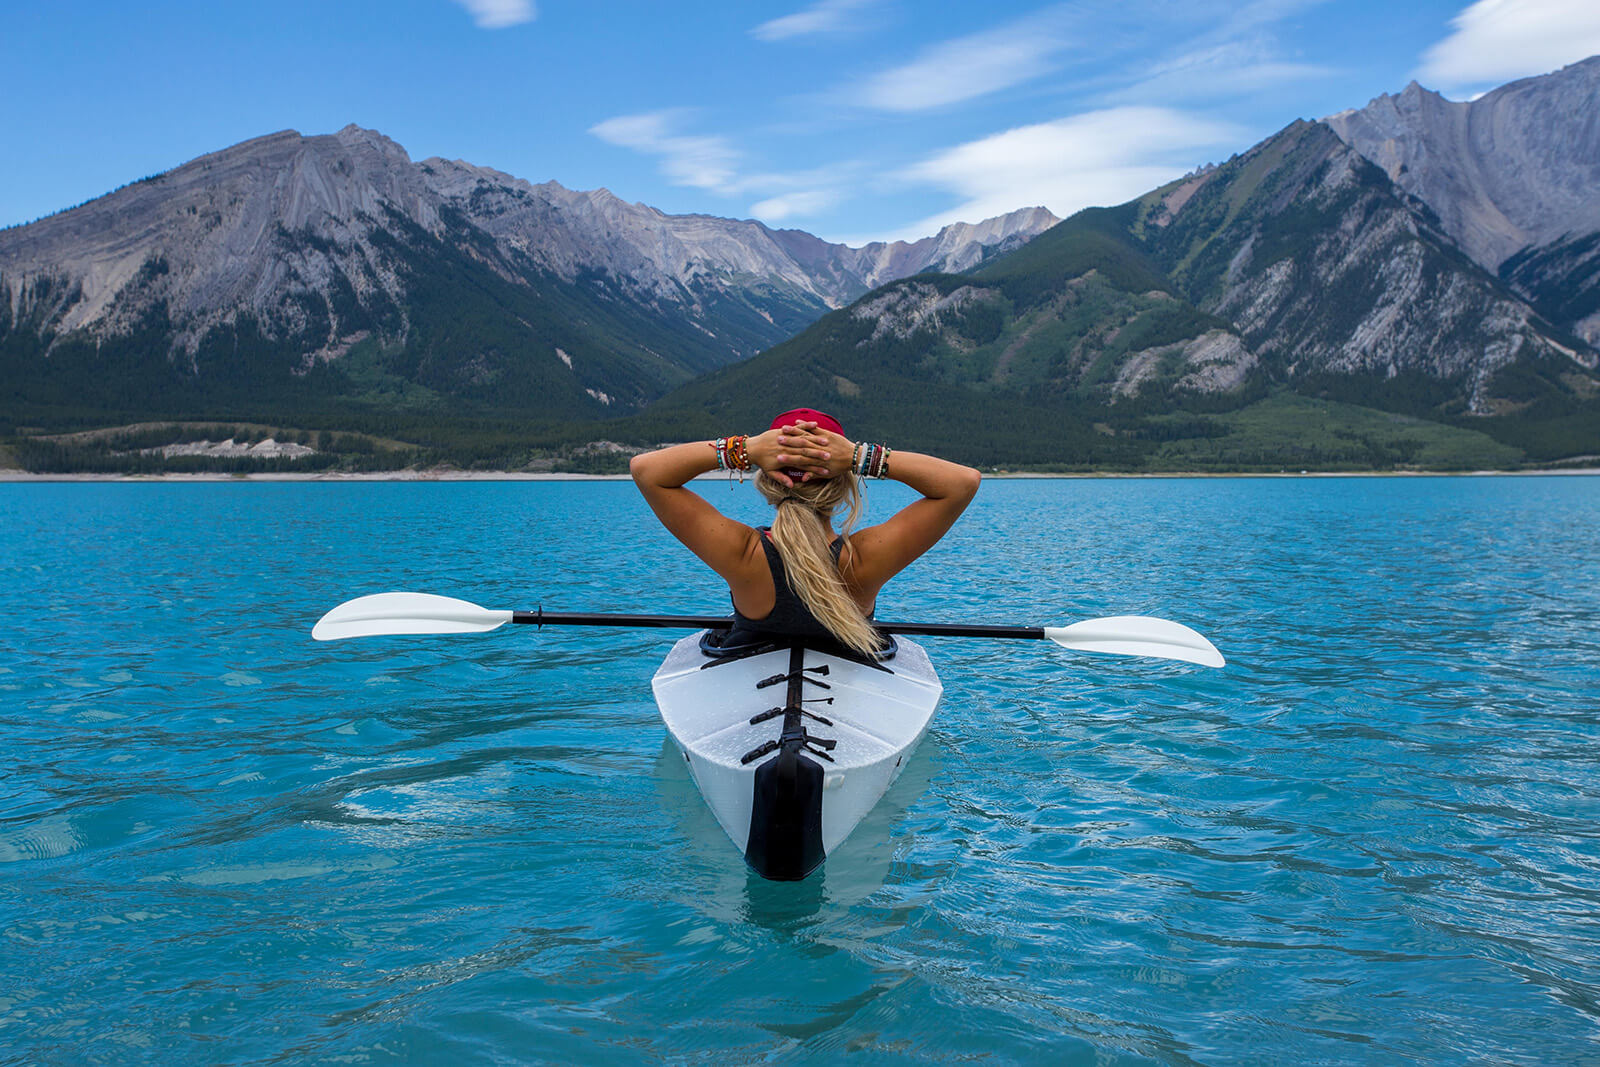 Escape the city and go on a solo travel adventure kayaking in Nordegg, Canada